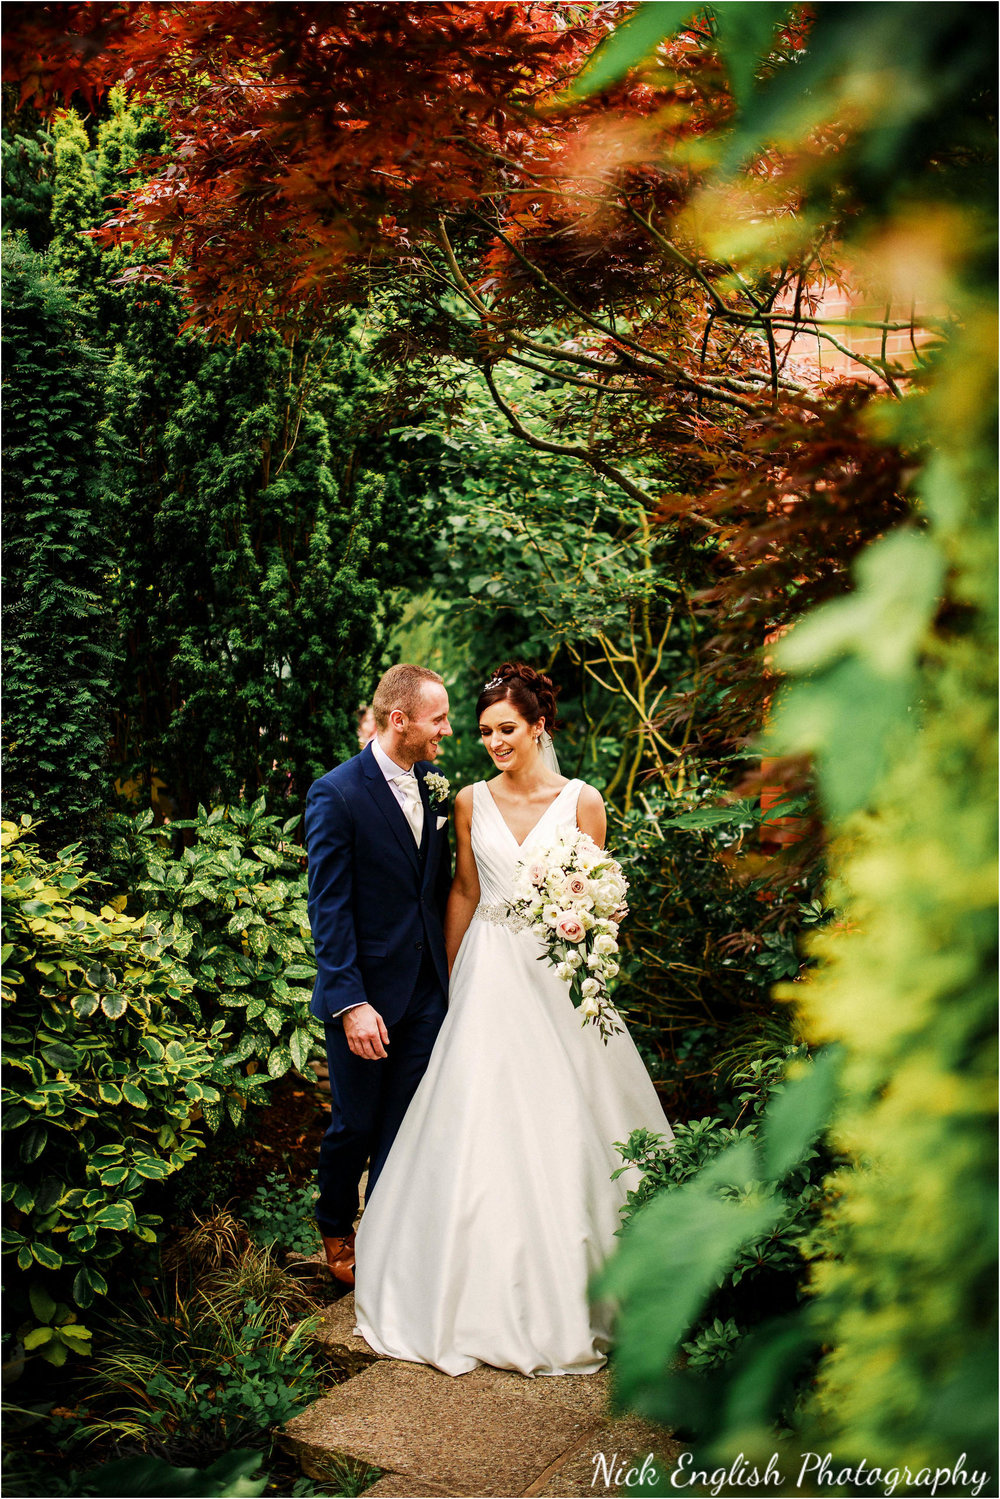 Emily David Wedding Photographs at Barton Grange Preston by Nick English Photography 141jpg.jpeg